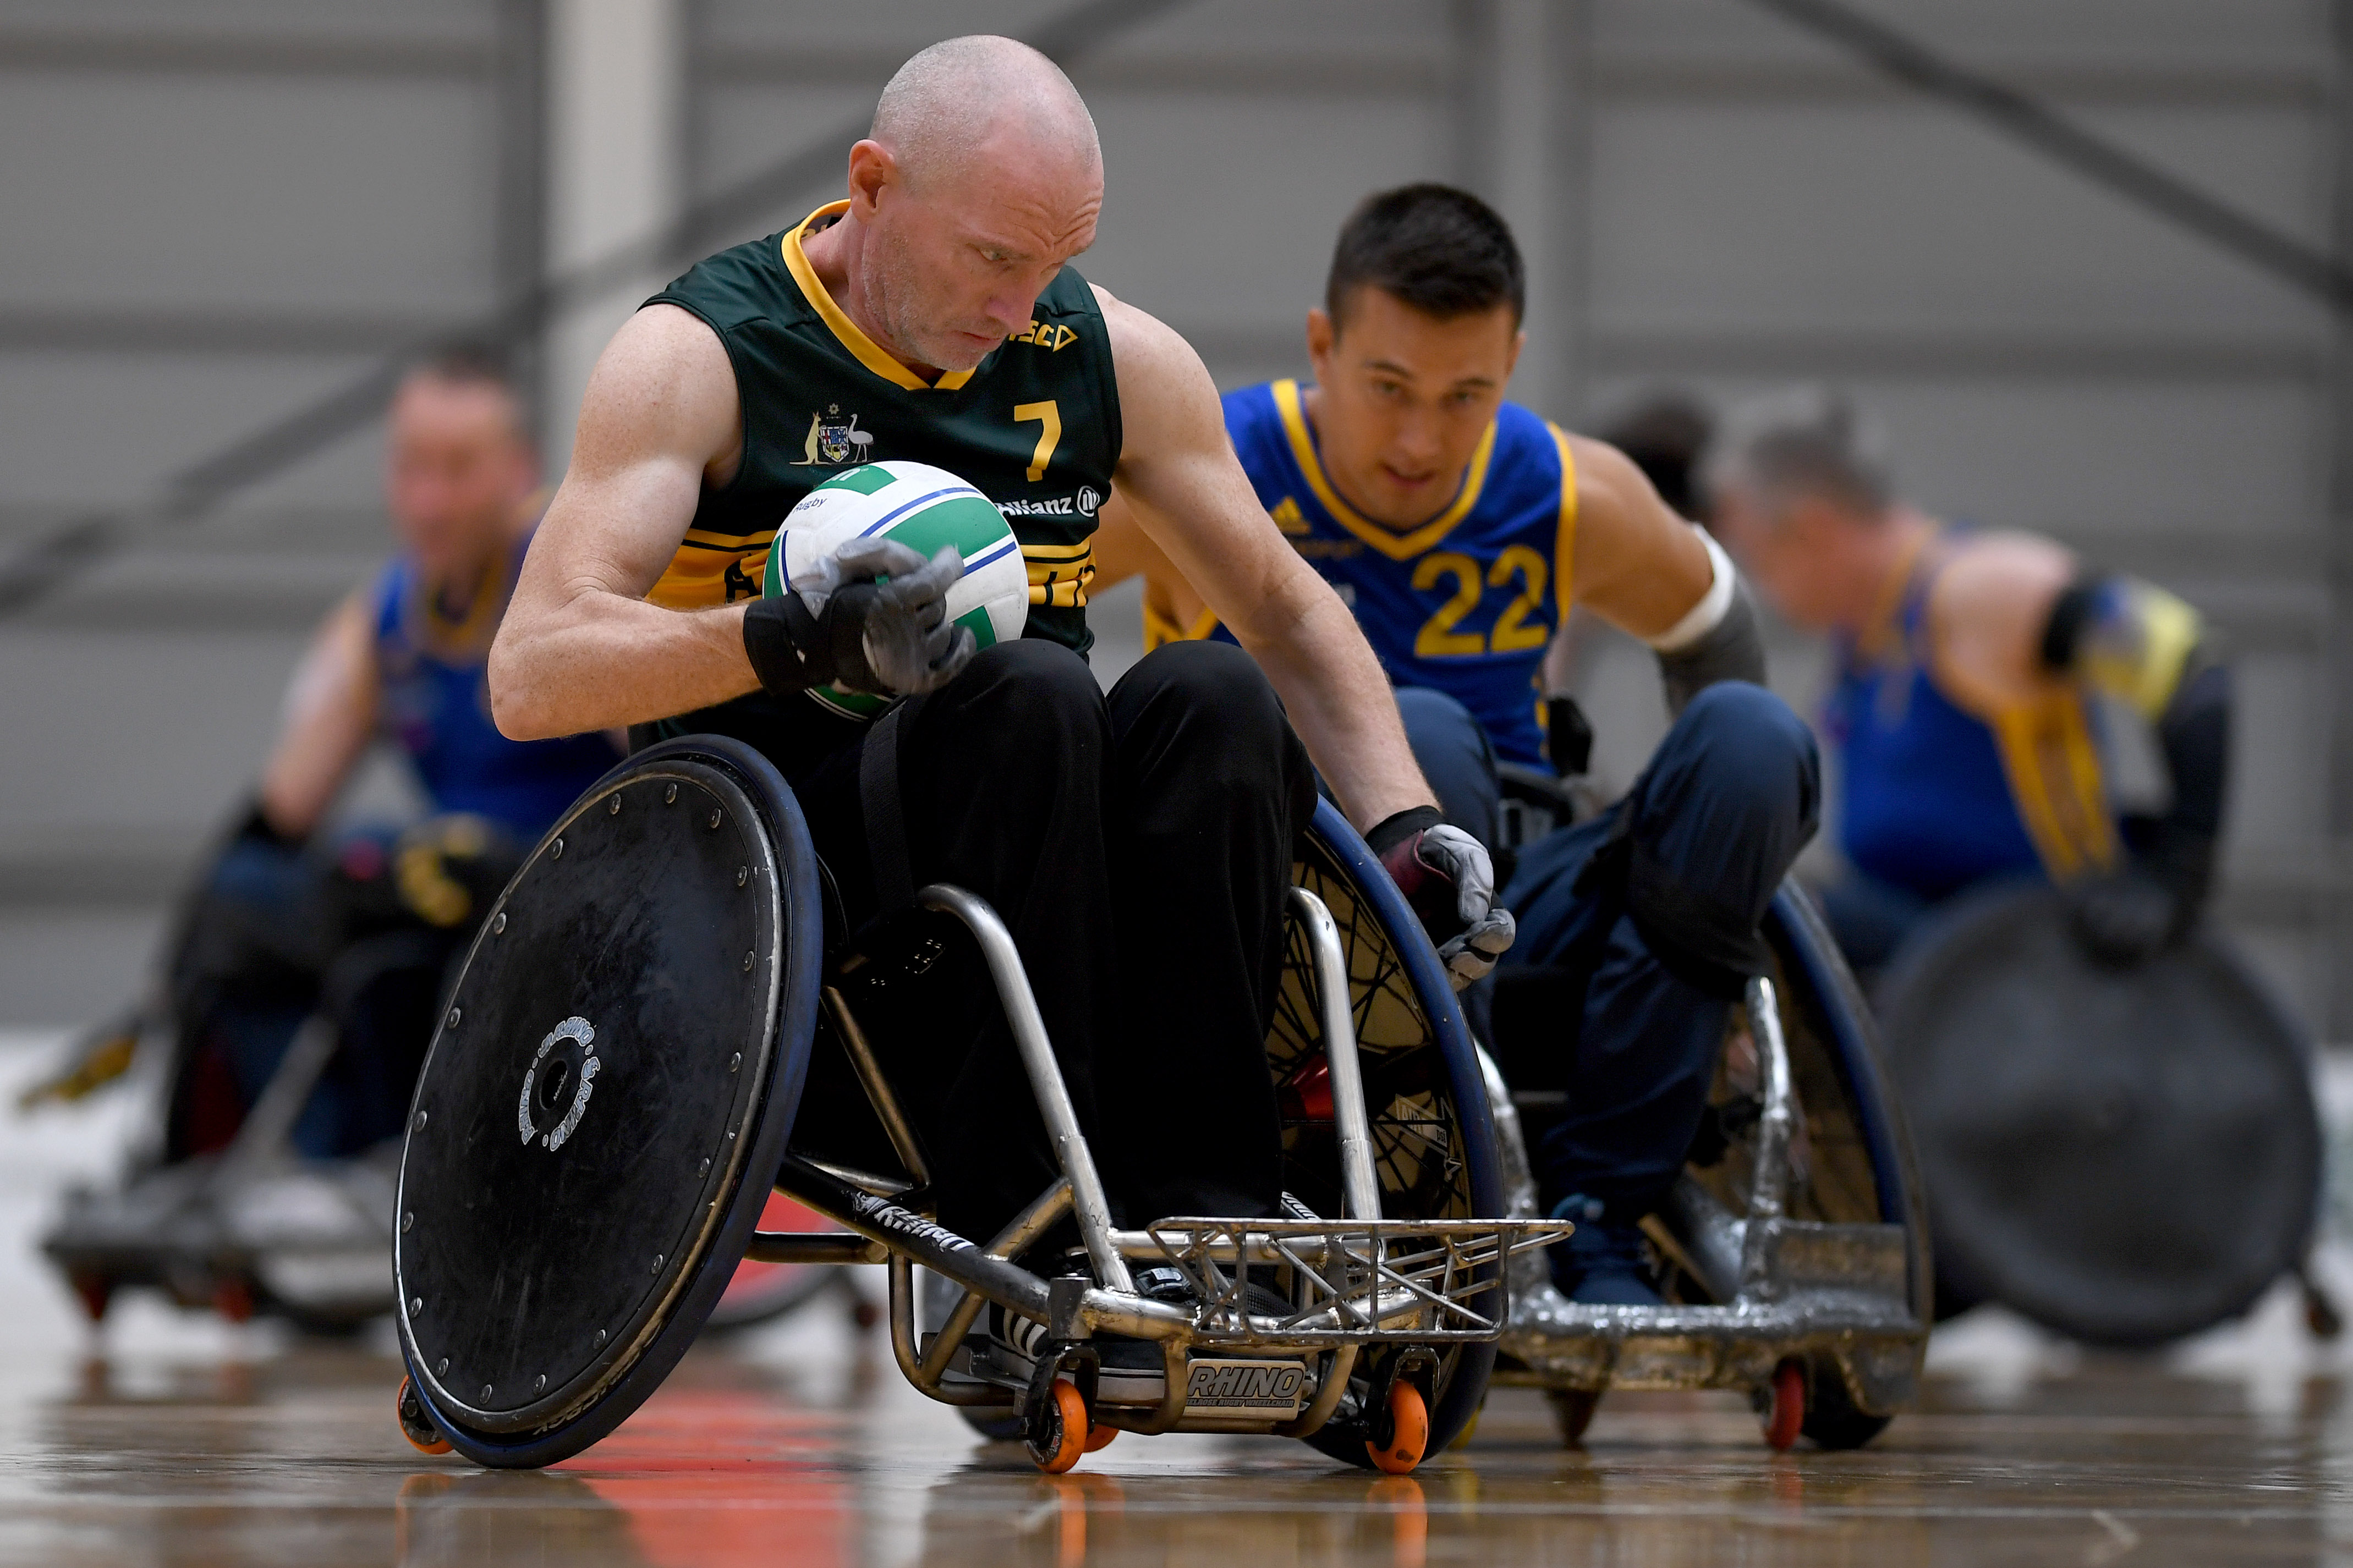 Paralympics Australia announces Steelers for 2019 World Wheelchair Rugby Challenge